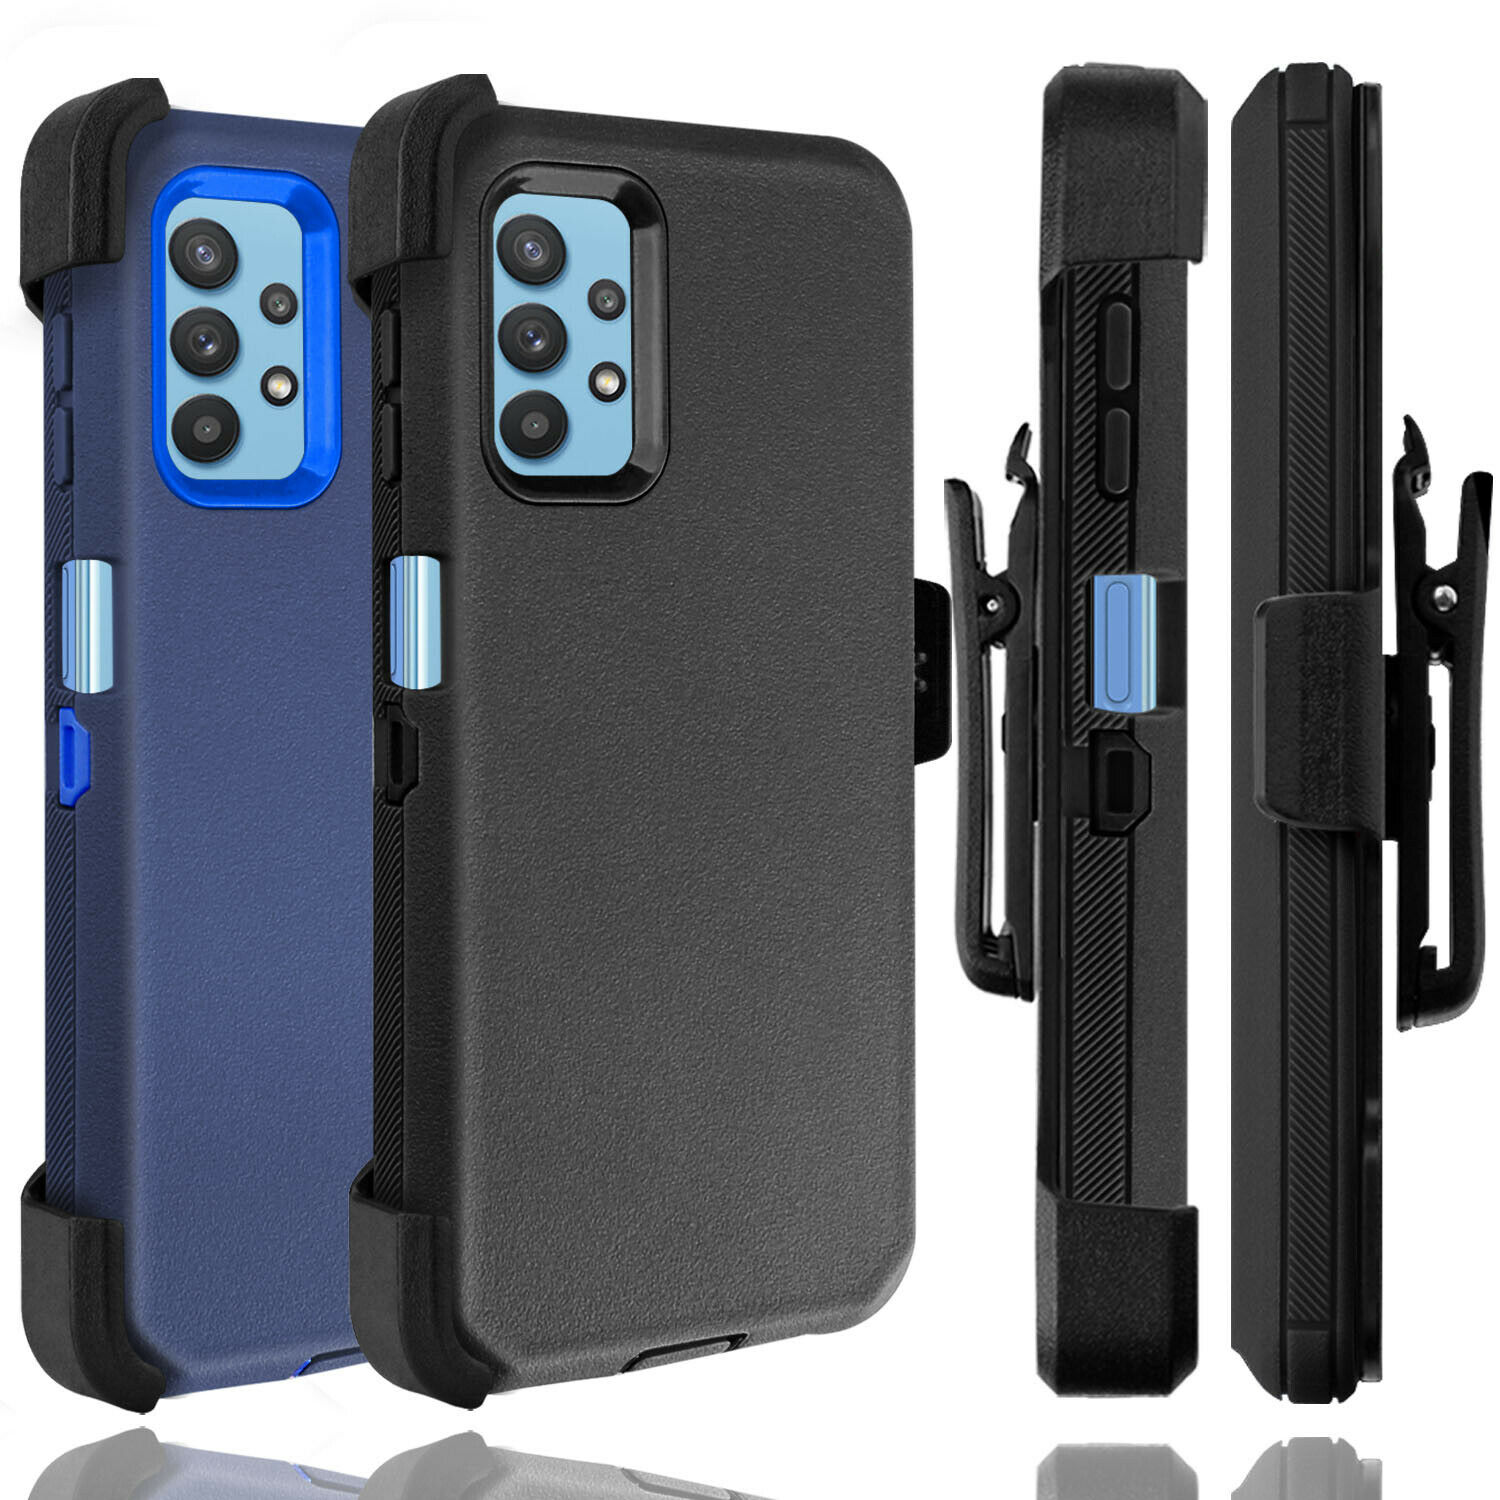 For Samsung Galaxy A12 A32 5G Case Holster Belt Clip Stand Heavy Duty Hard Cover Cases, Covers & Skins